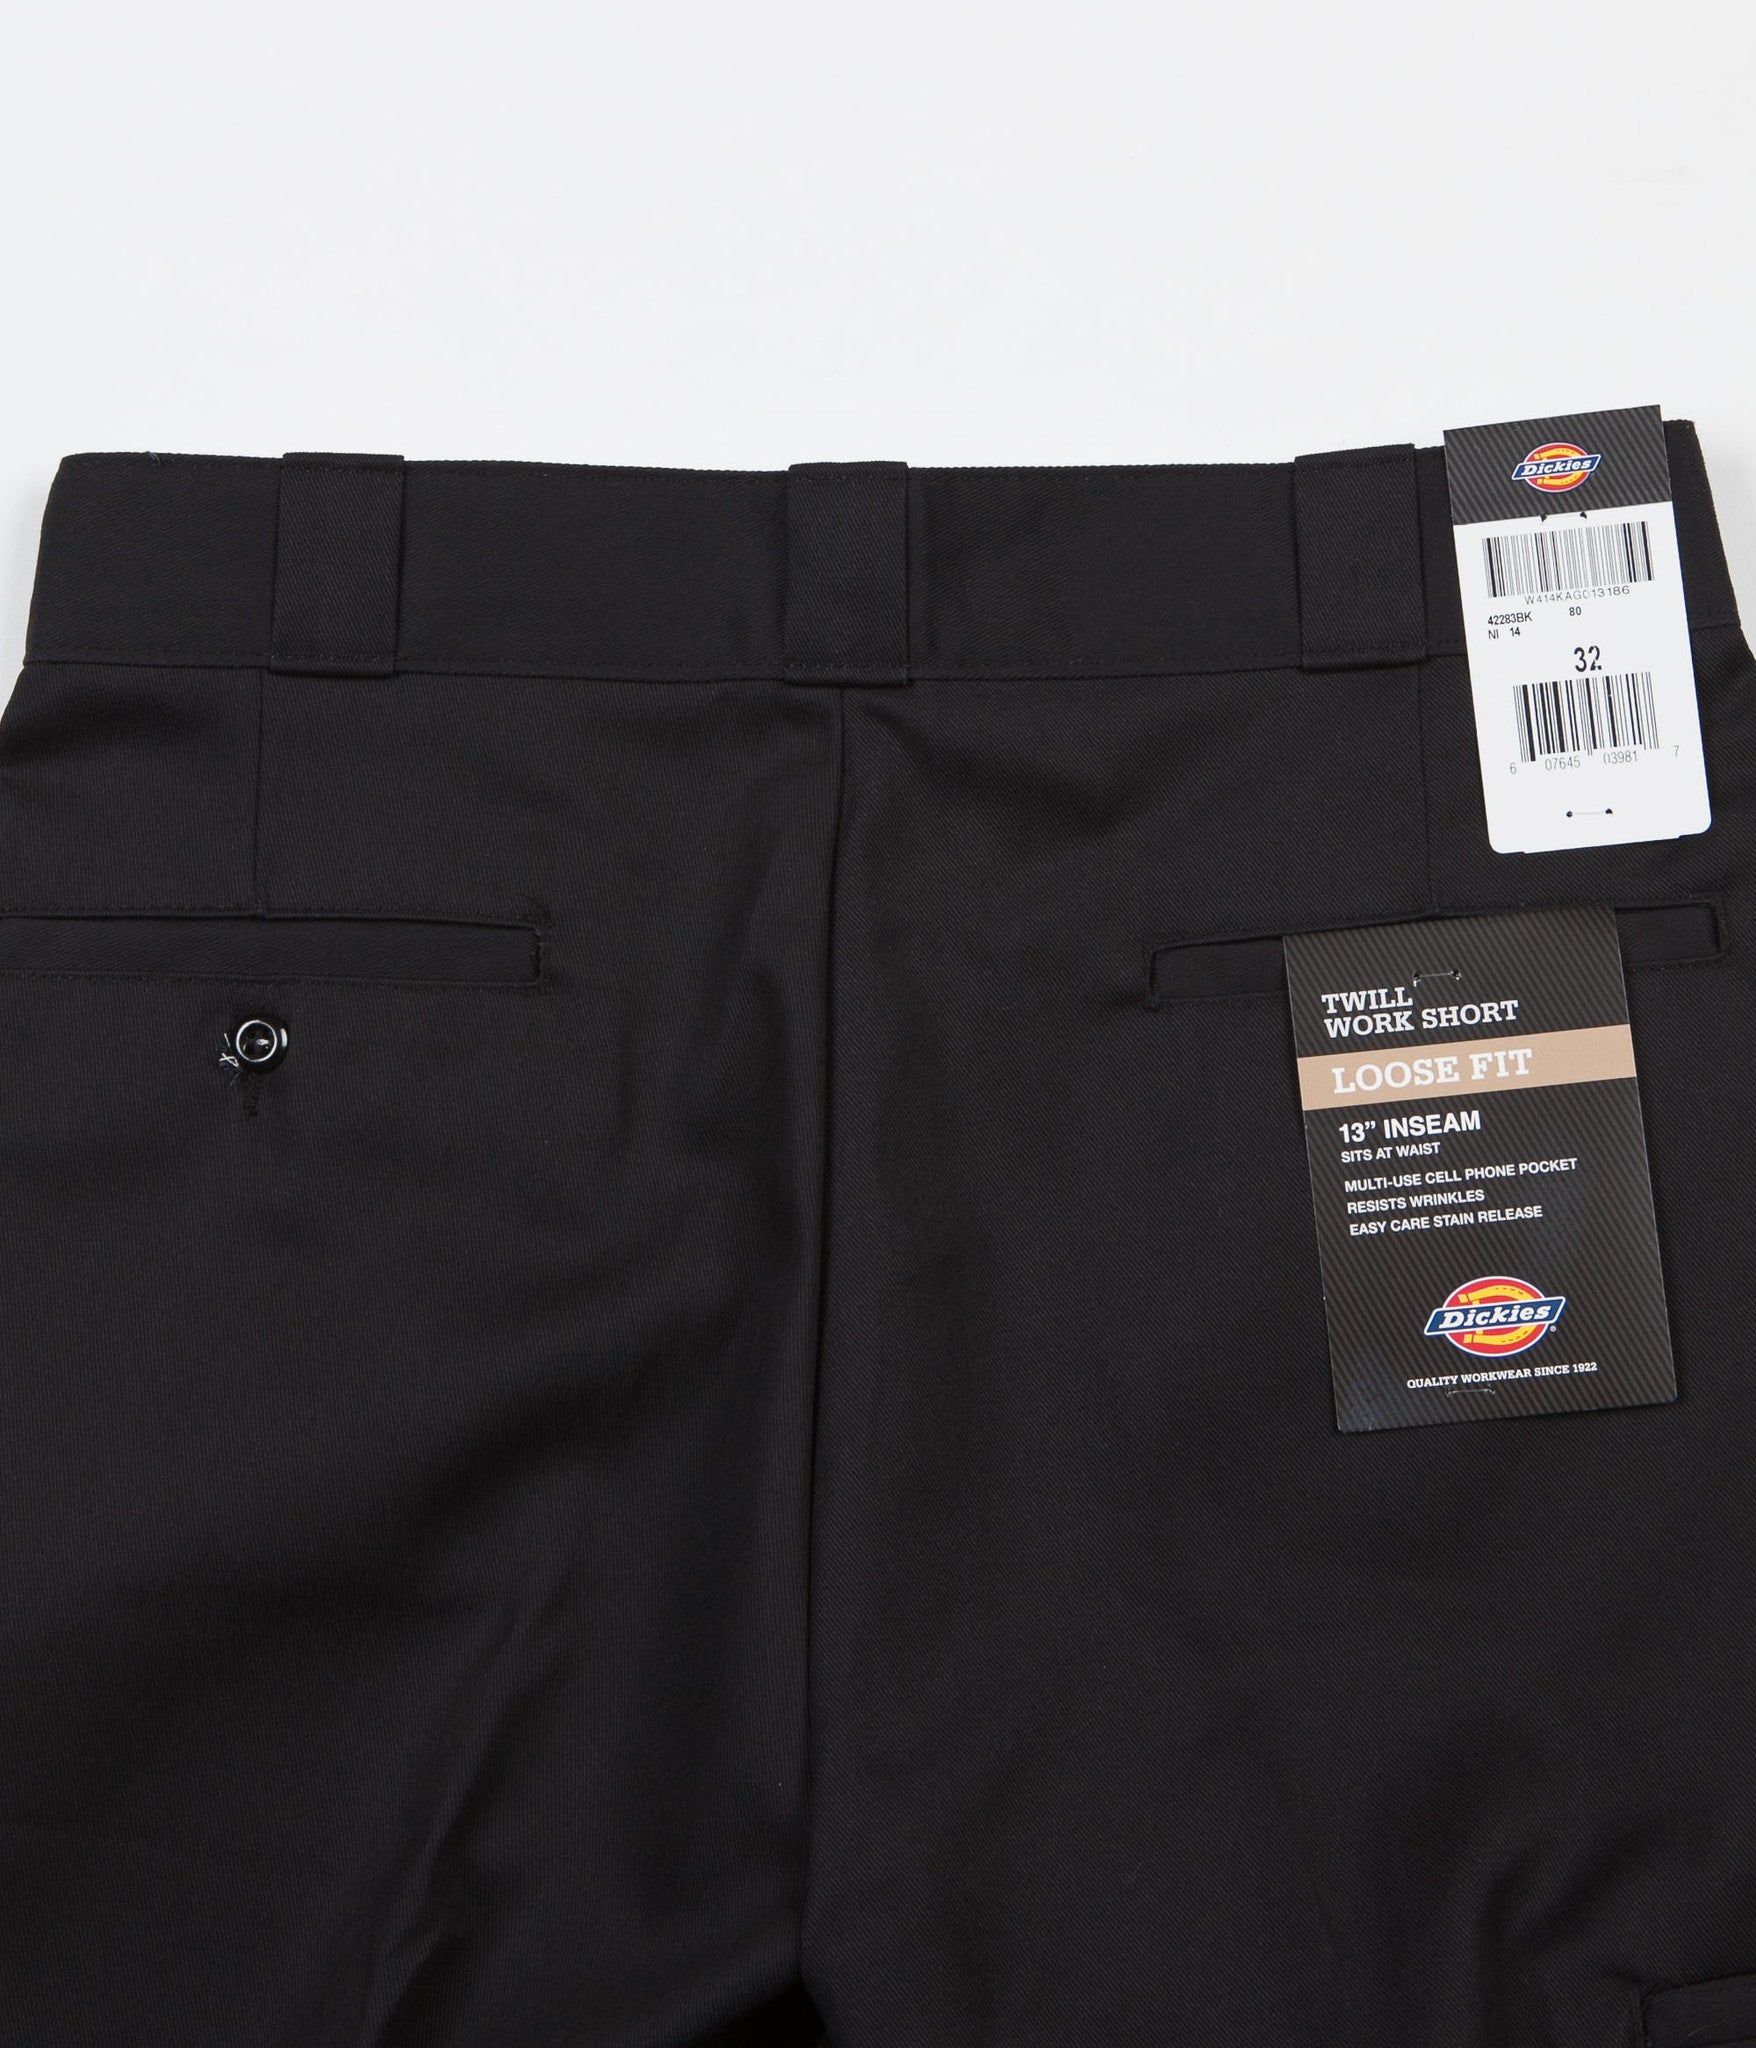 e43e4cea4b6 ... Dickies 283 Multi Pocket Work Shorts - Black ...